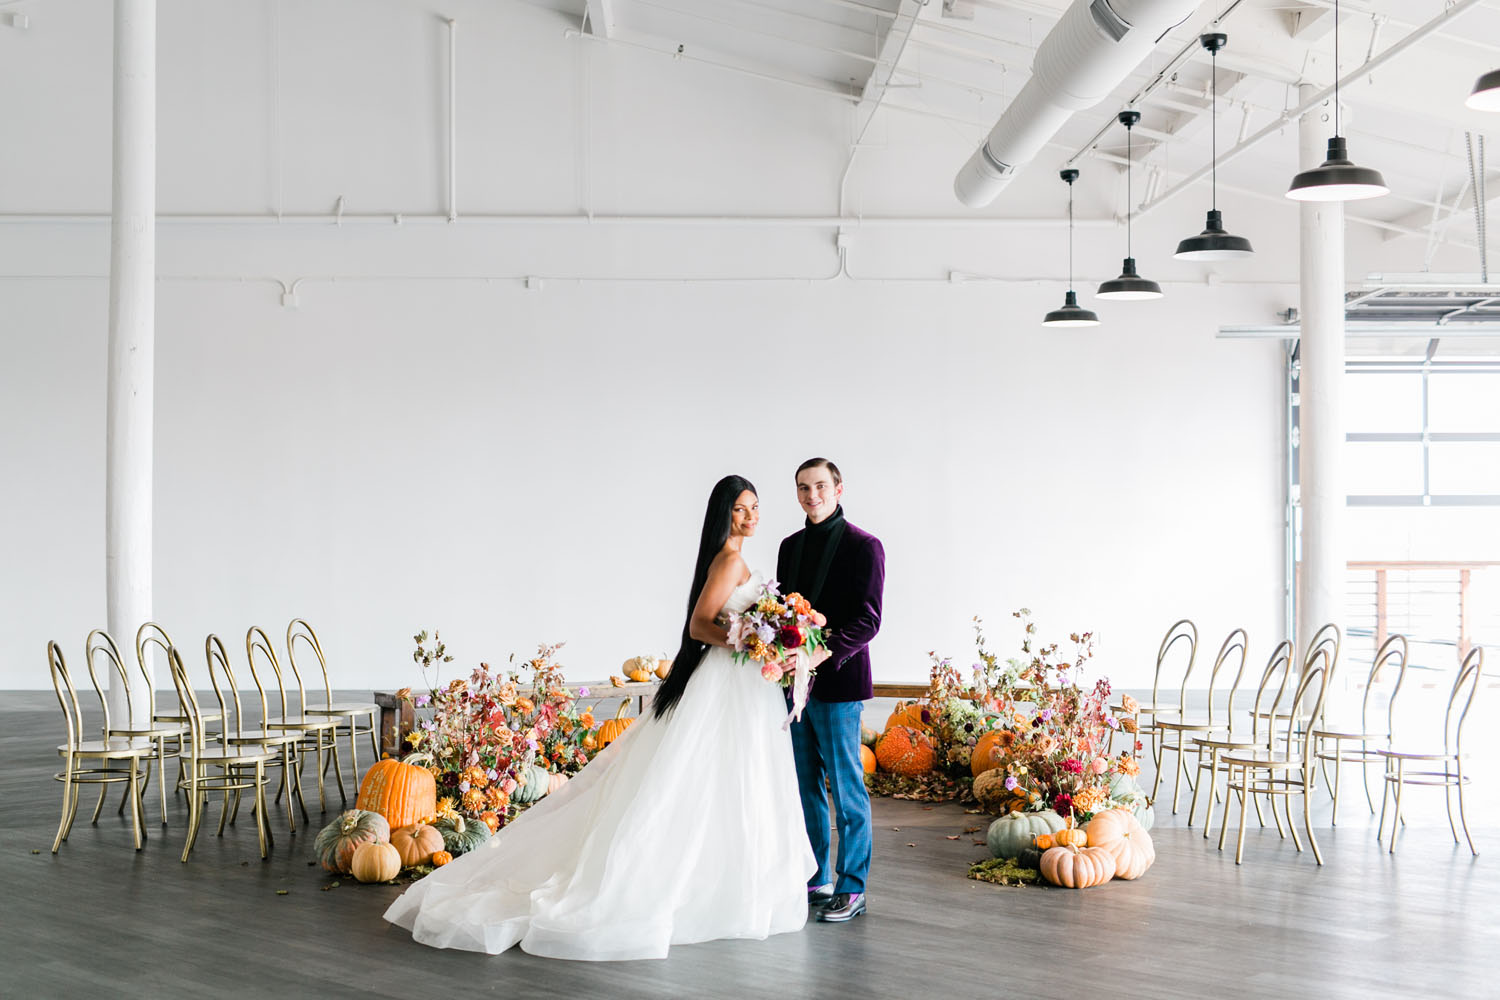 Pumpkin Spice Fairytale Wedding Inspiration with a Lavender Dress